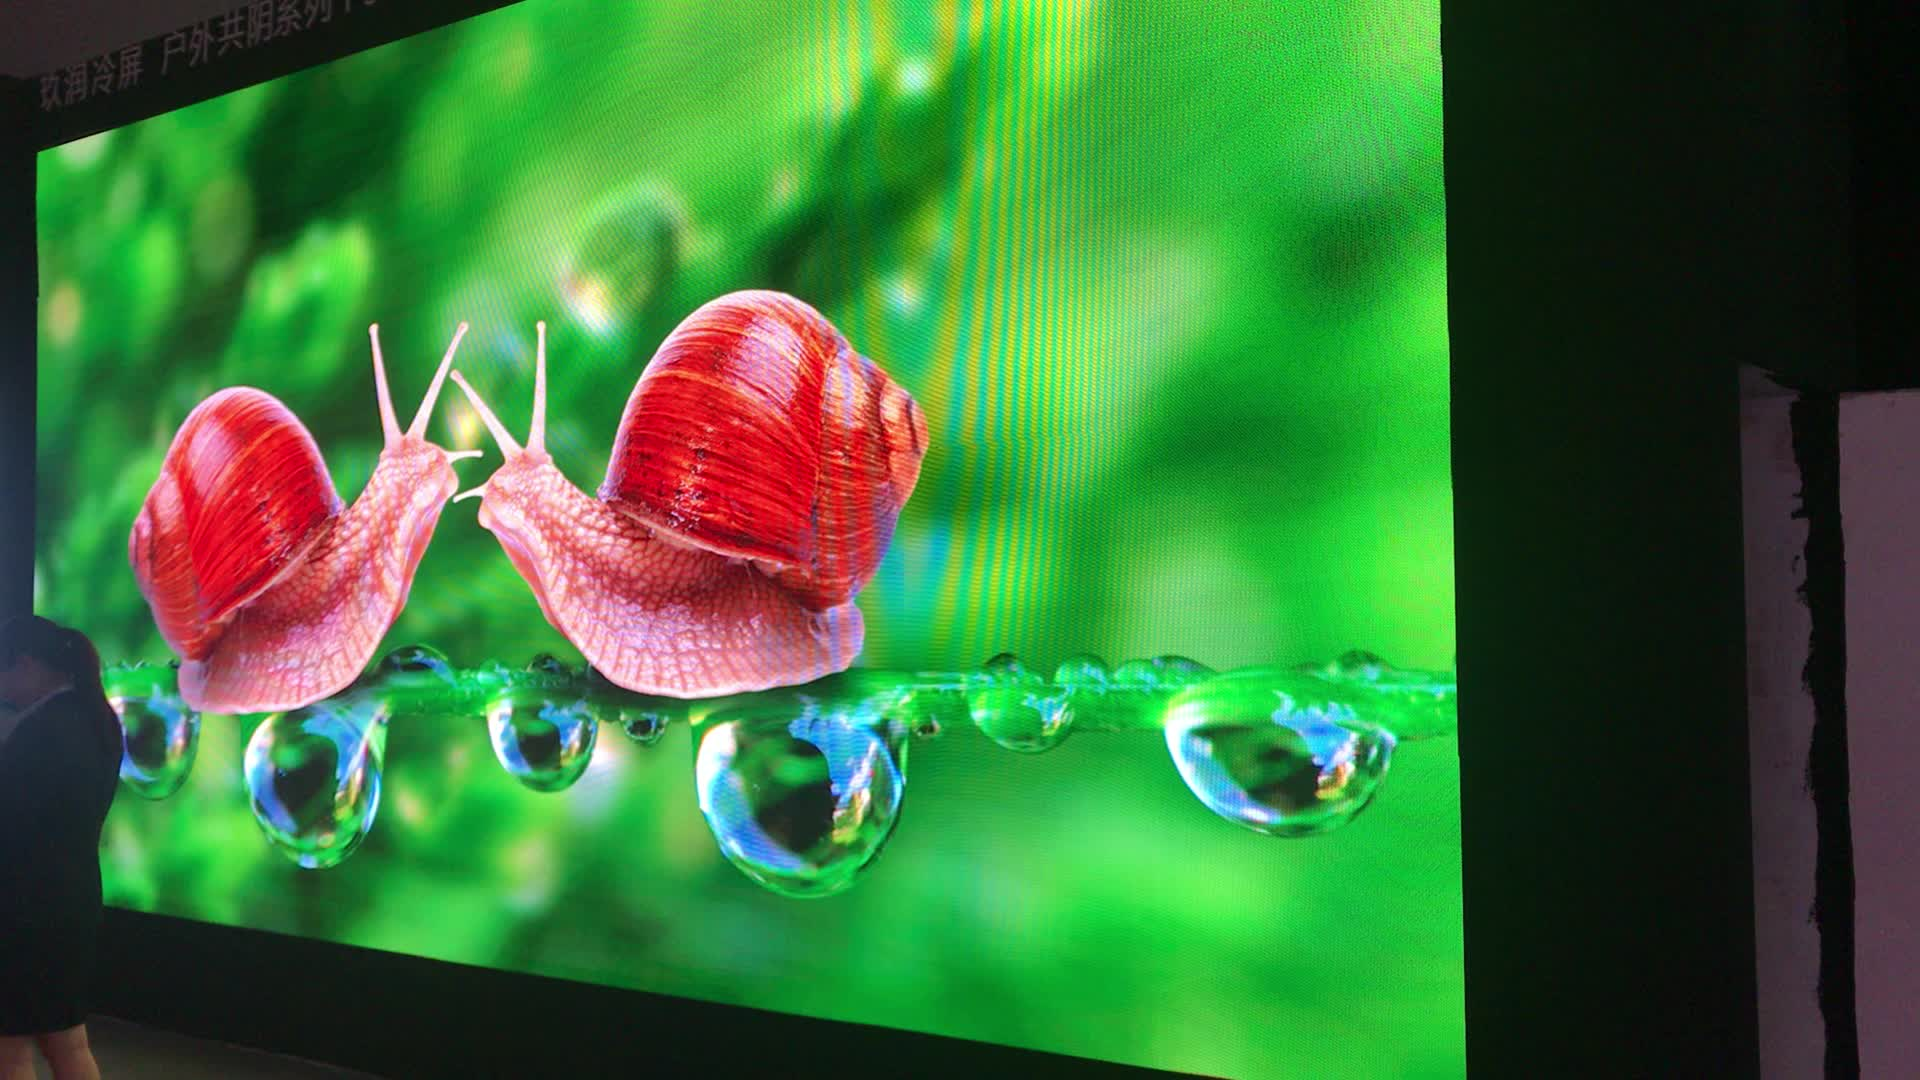 SMD1921 PH3mm HD Advertising High Refresh 3840Hz Stage Background Led Video Wall